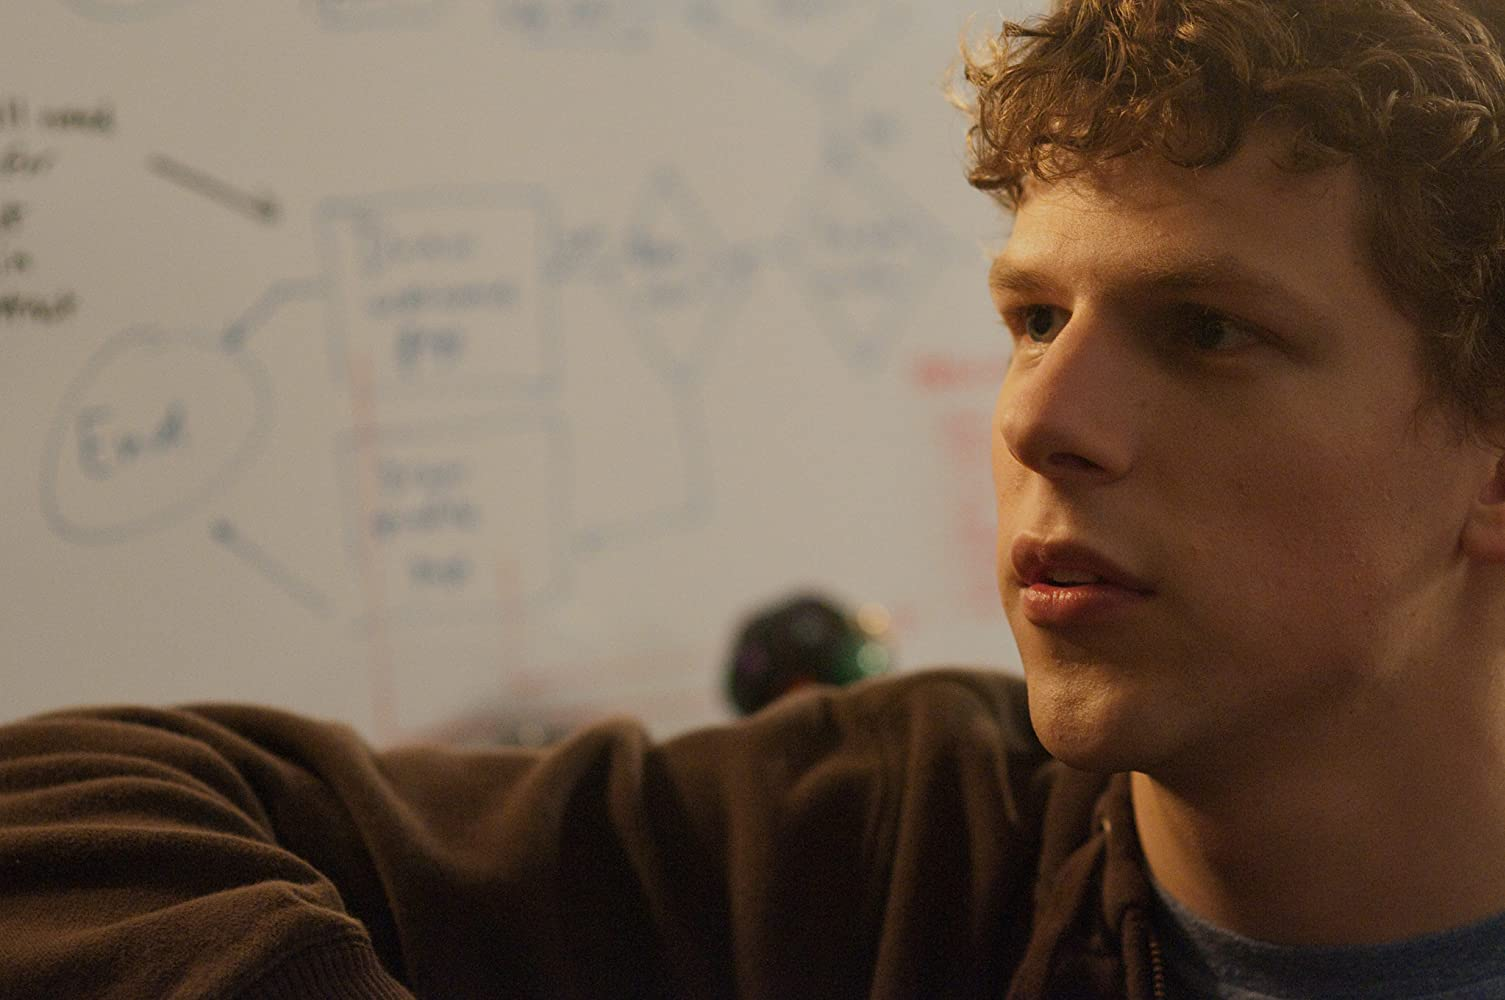 Jesse Eisenberg in The Social Network (2010)